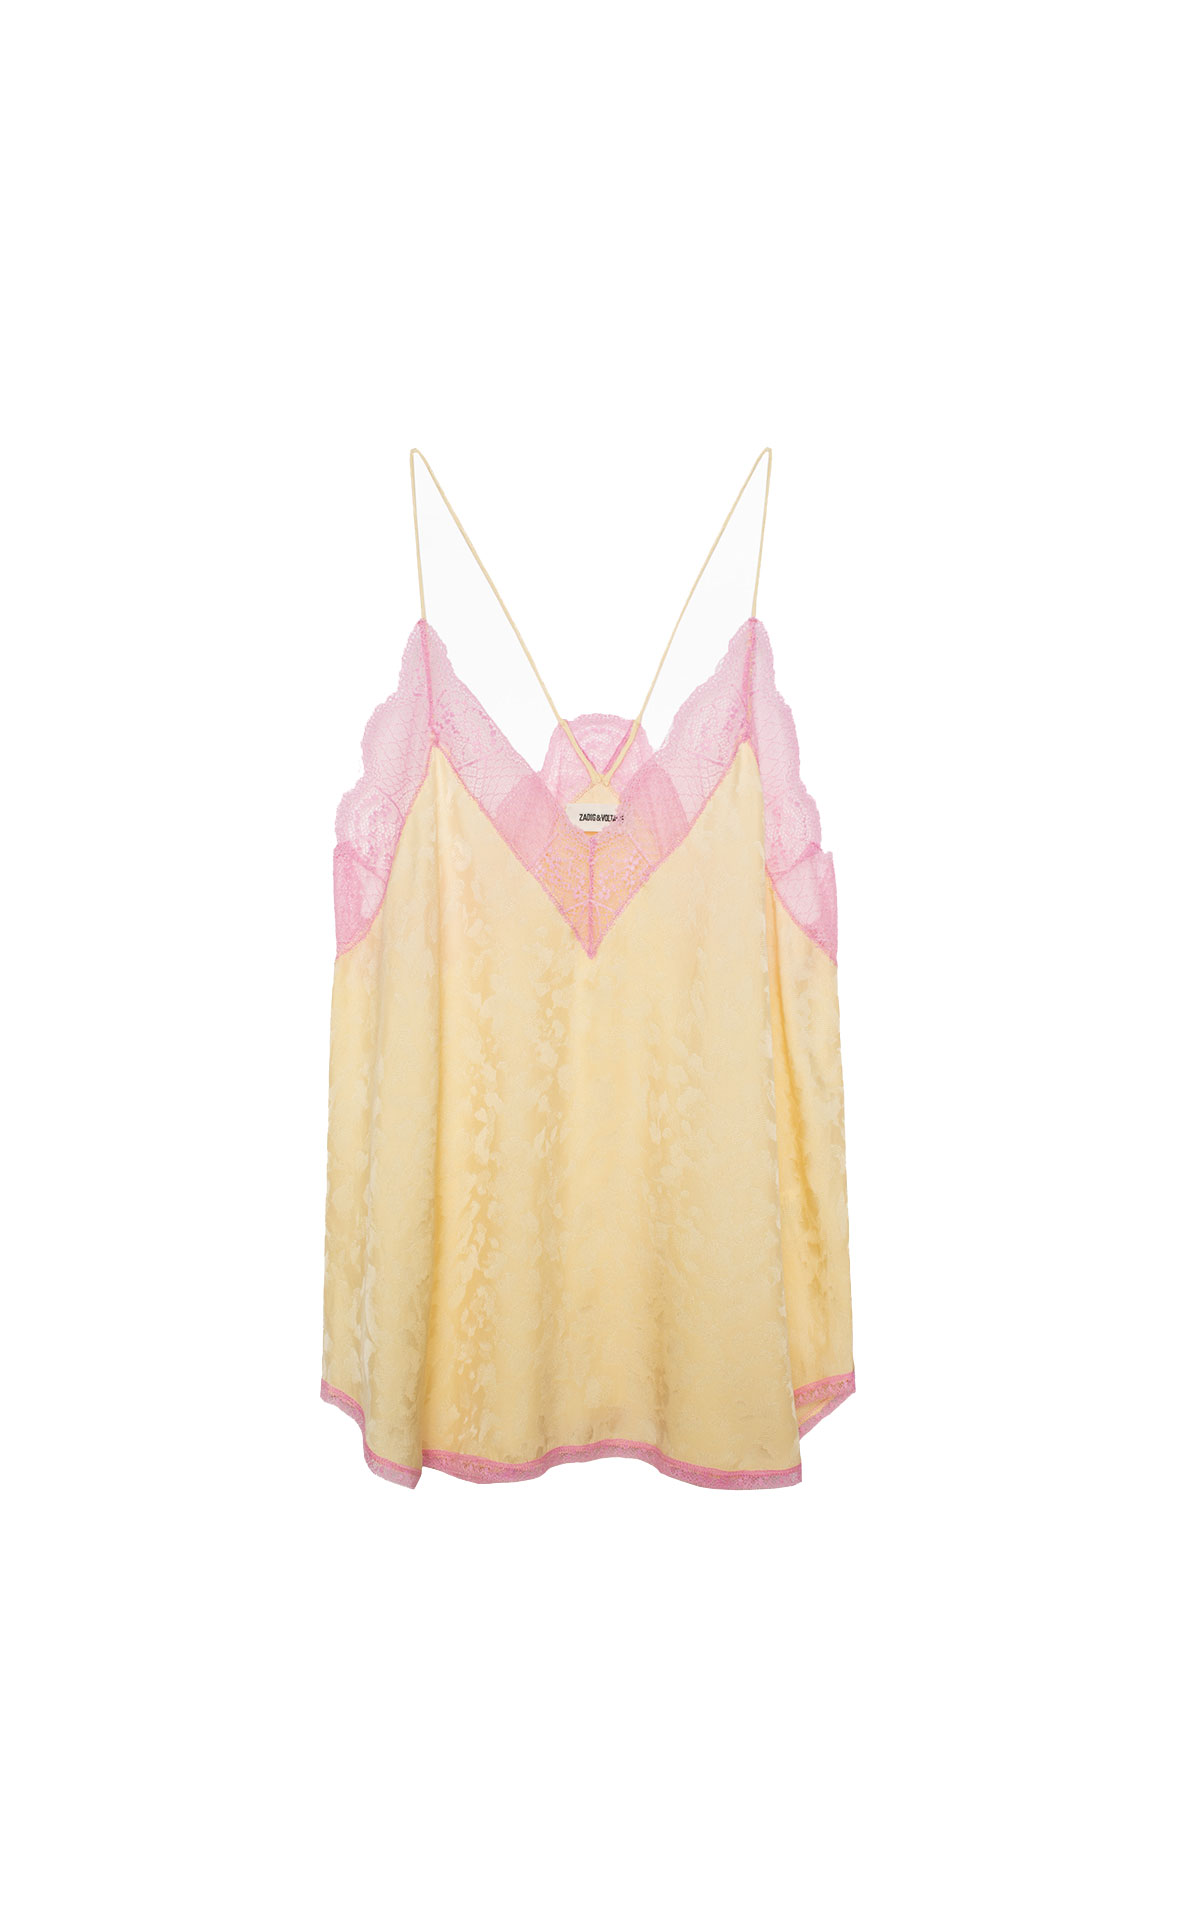 Zadig & Voltaire Yellow jacquard camisole from Bicester Village